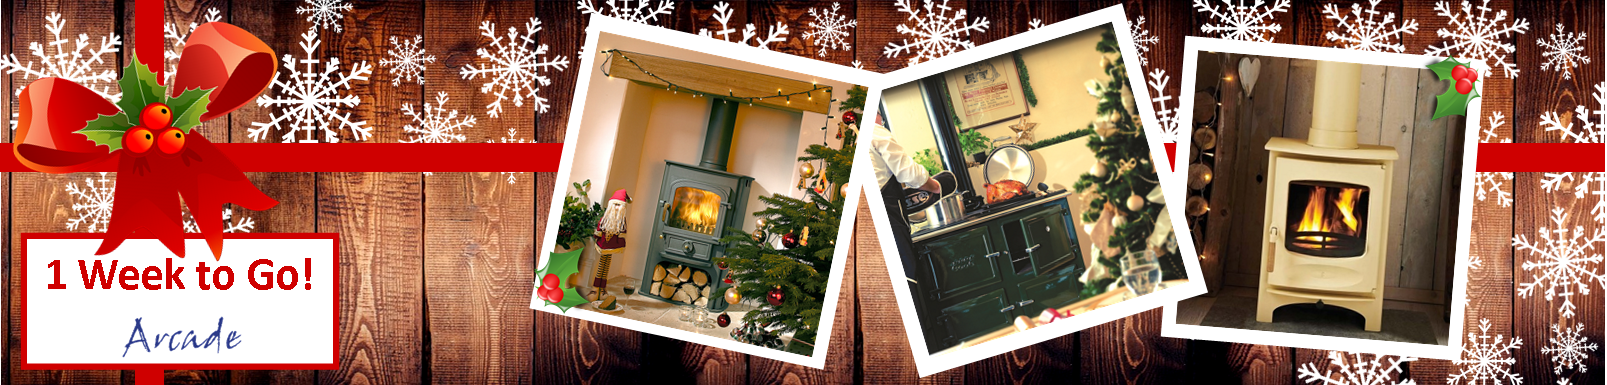 1 Week to Go - 12 Stoves of Christmas